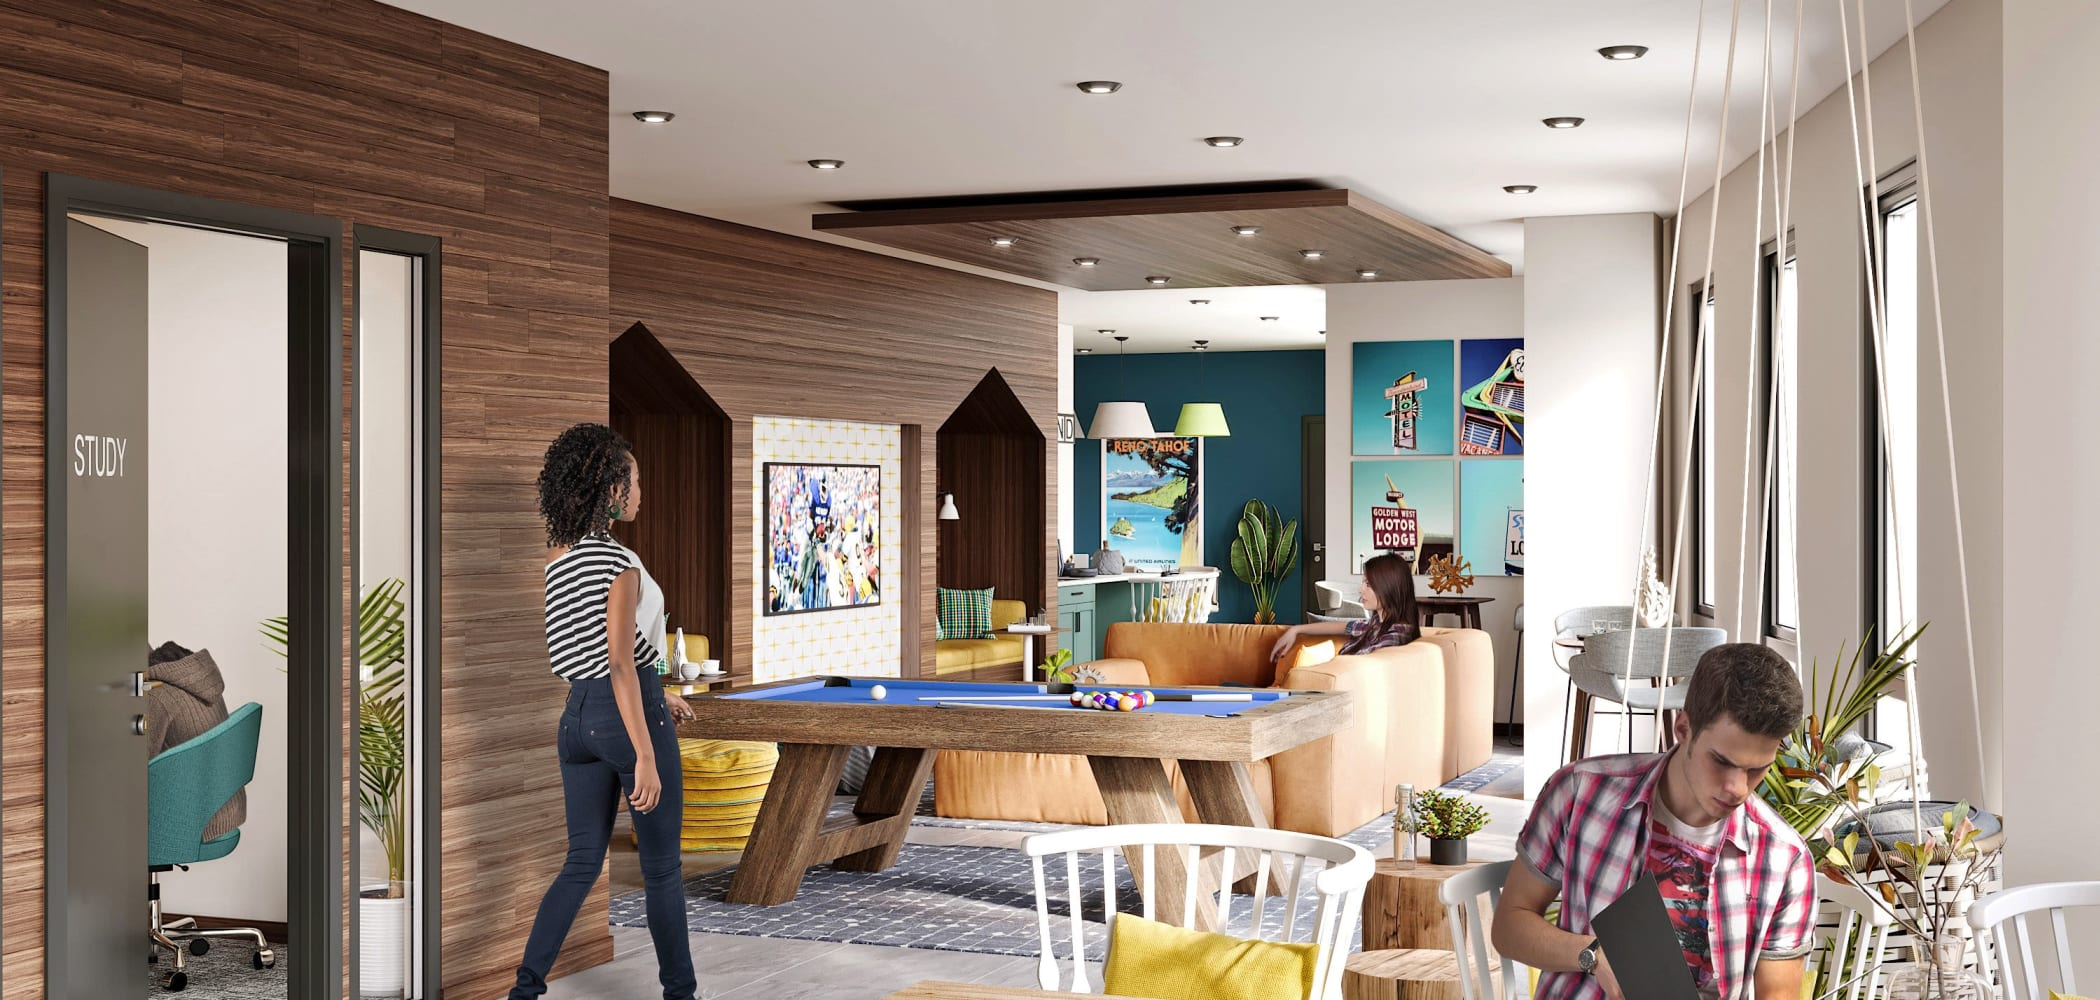 Club room for residents at UNCOMMON Reno in Reno, Nevada